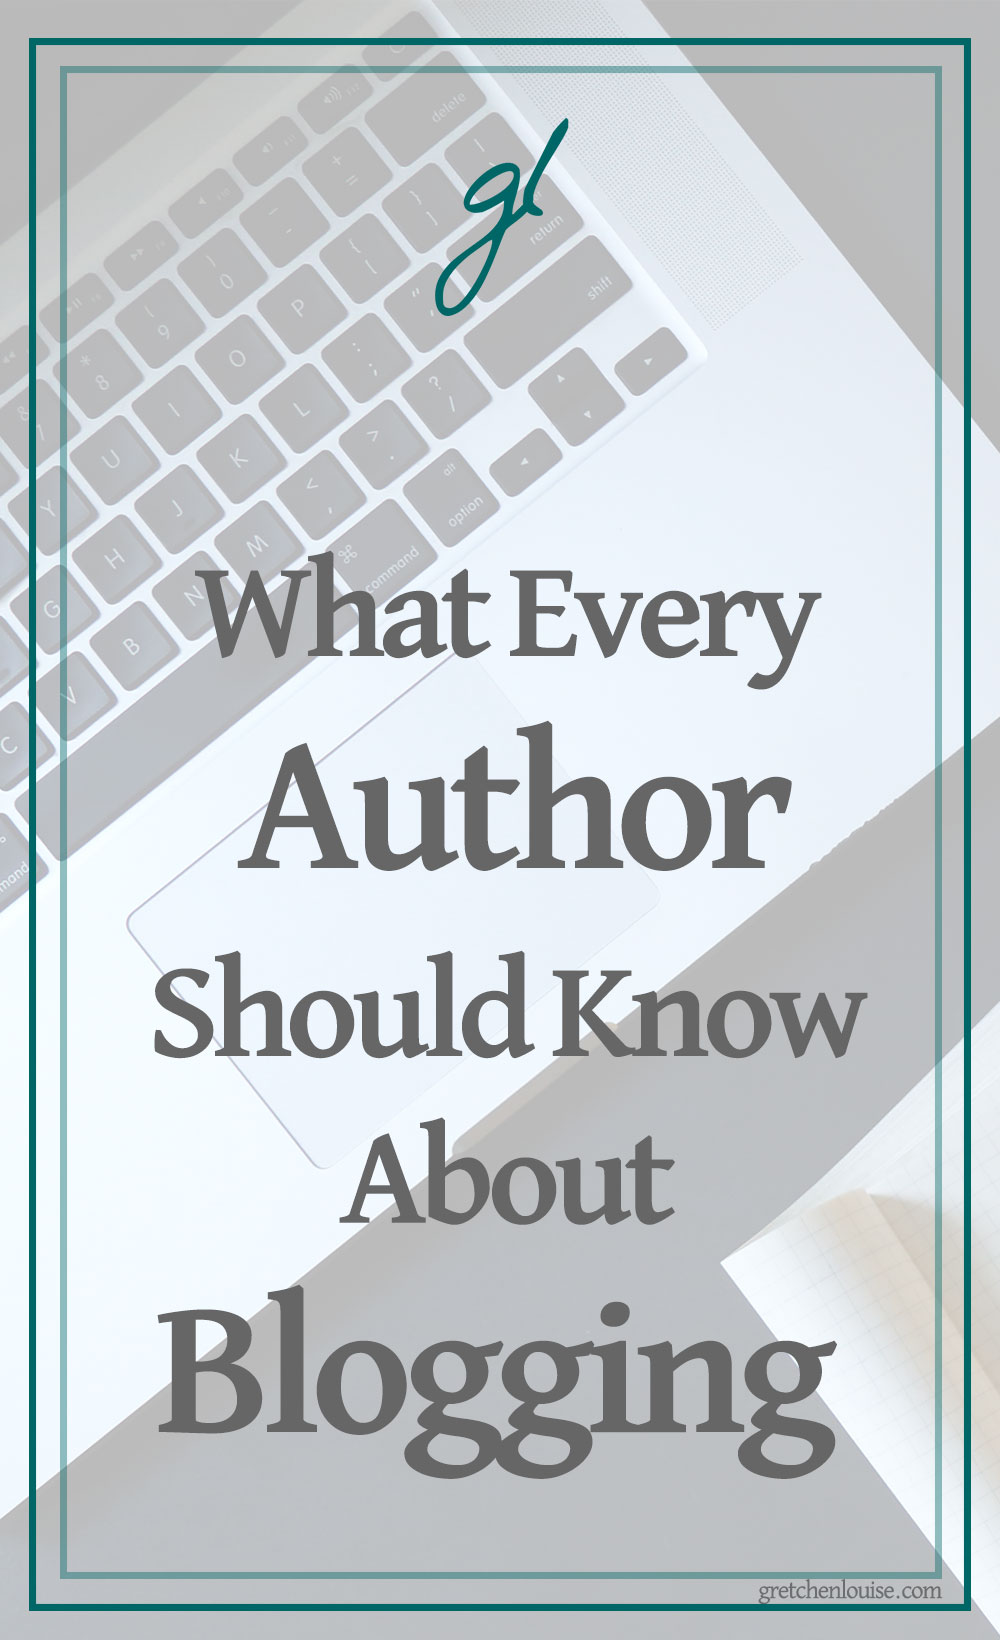 Authors are more responsible now than ever for helping to market their book and connect with their audience—and in a large part, that takes place in the often foreign world of social media. via @GretLouise